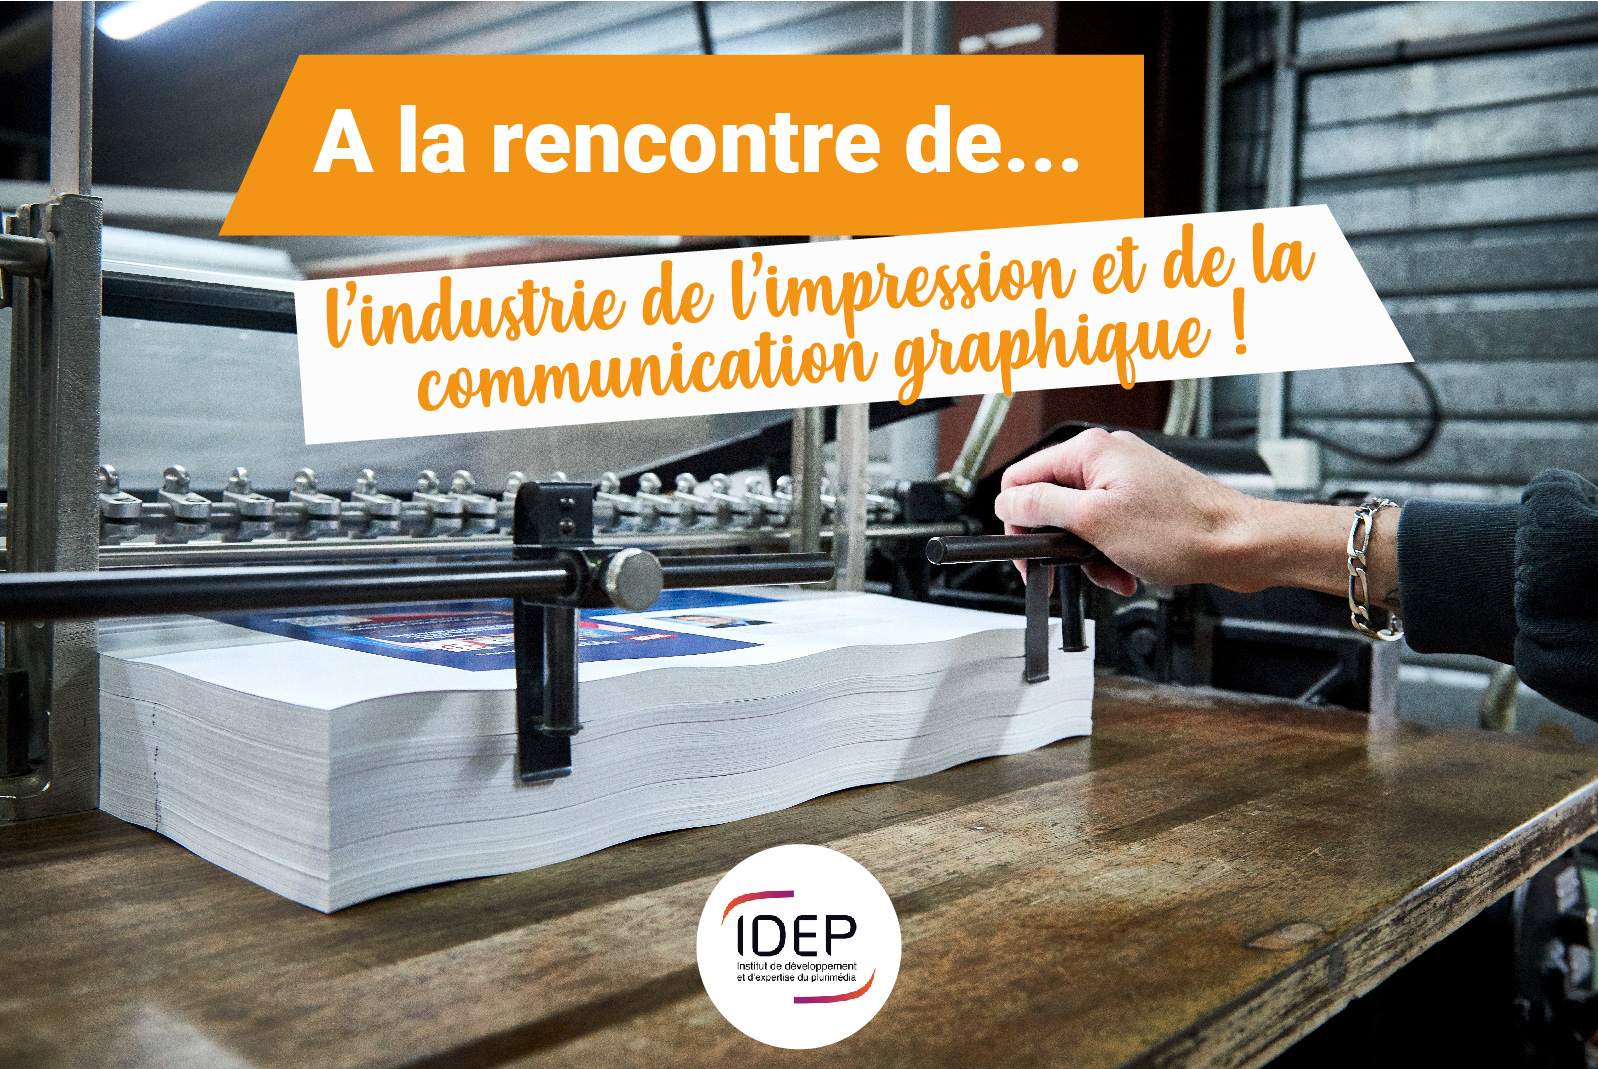 A la rencontre de... l'industrie de l'impression et de la communication graphique !